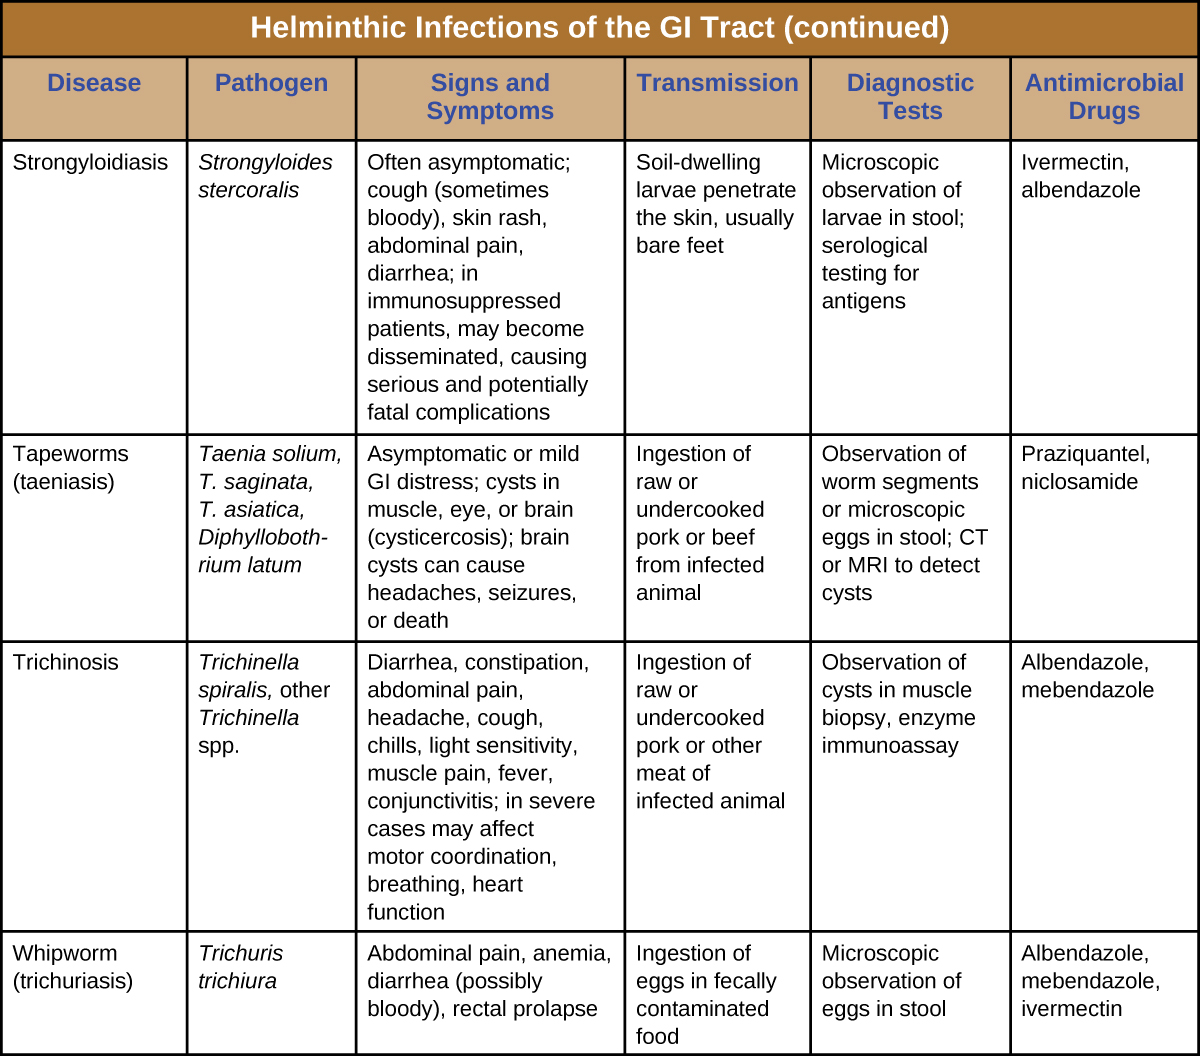 Continuation of table titled: Helminthic Infections of the GI Tract. Columns: Disease, Pathogen, Signs and Symptoms, Transmission, Diagnostic Tests, Antimicrobial Drugs. Strongyloidiasis; Strongyloides stercoralis; Often asymptomatic; cough (sometimes bloody), skin rash, abdominal pain, diarrhea; in immunosuppressed patients, may become disseminated, causing serious and potentially fatal complications Soil-dwelling larvae penetrate the skin, usually bare feet; Microscopic observation of larvae in stool; serological testing for antigens; Ivermectin, albendazole. Tapeworms (taeniasis) ; Taenia solium, T. saginata, T. asiatica, Diphyllobothrium latum; Asymptomatic or mild GI distress; cysts in muscle, eye, or brain (cysticercosis); brain cysts can cause headaches, seizures, or death; Ingestion of raw or undercooked pork or beef from infected animal; Observation of worm segments or microscopic eggs in stool; CT or MRI to detect cysts; Praziquantel, niclosamide. Trichinosis; Trichinella spiralis, other Trichinella spp. Diarrhea, constipation, abdominal pain, headache, cough, chills, light sensitivity, muscle pain, fever, conjunctivitis; in severe cases may affect motor coordination, breathing, heart function; Ingestion of raw or undercooked pork or other meat of infected animal; Observation of cysts in muscle biopsy, enzyme immunoassay; Albendazole, mebendazole. Whipworm (trichuriasis); Trichuris trichiura; Abdominal pain, anemia, diarrhea (possibly bloody), rectal prolapse; Ingestion of eggs in fecally contaminated food Microscopic observation of eggs in stool; Albendazole, mebendazole, ivermectin.